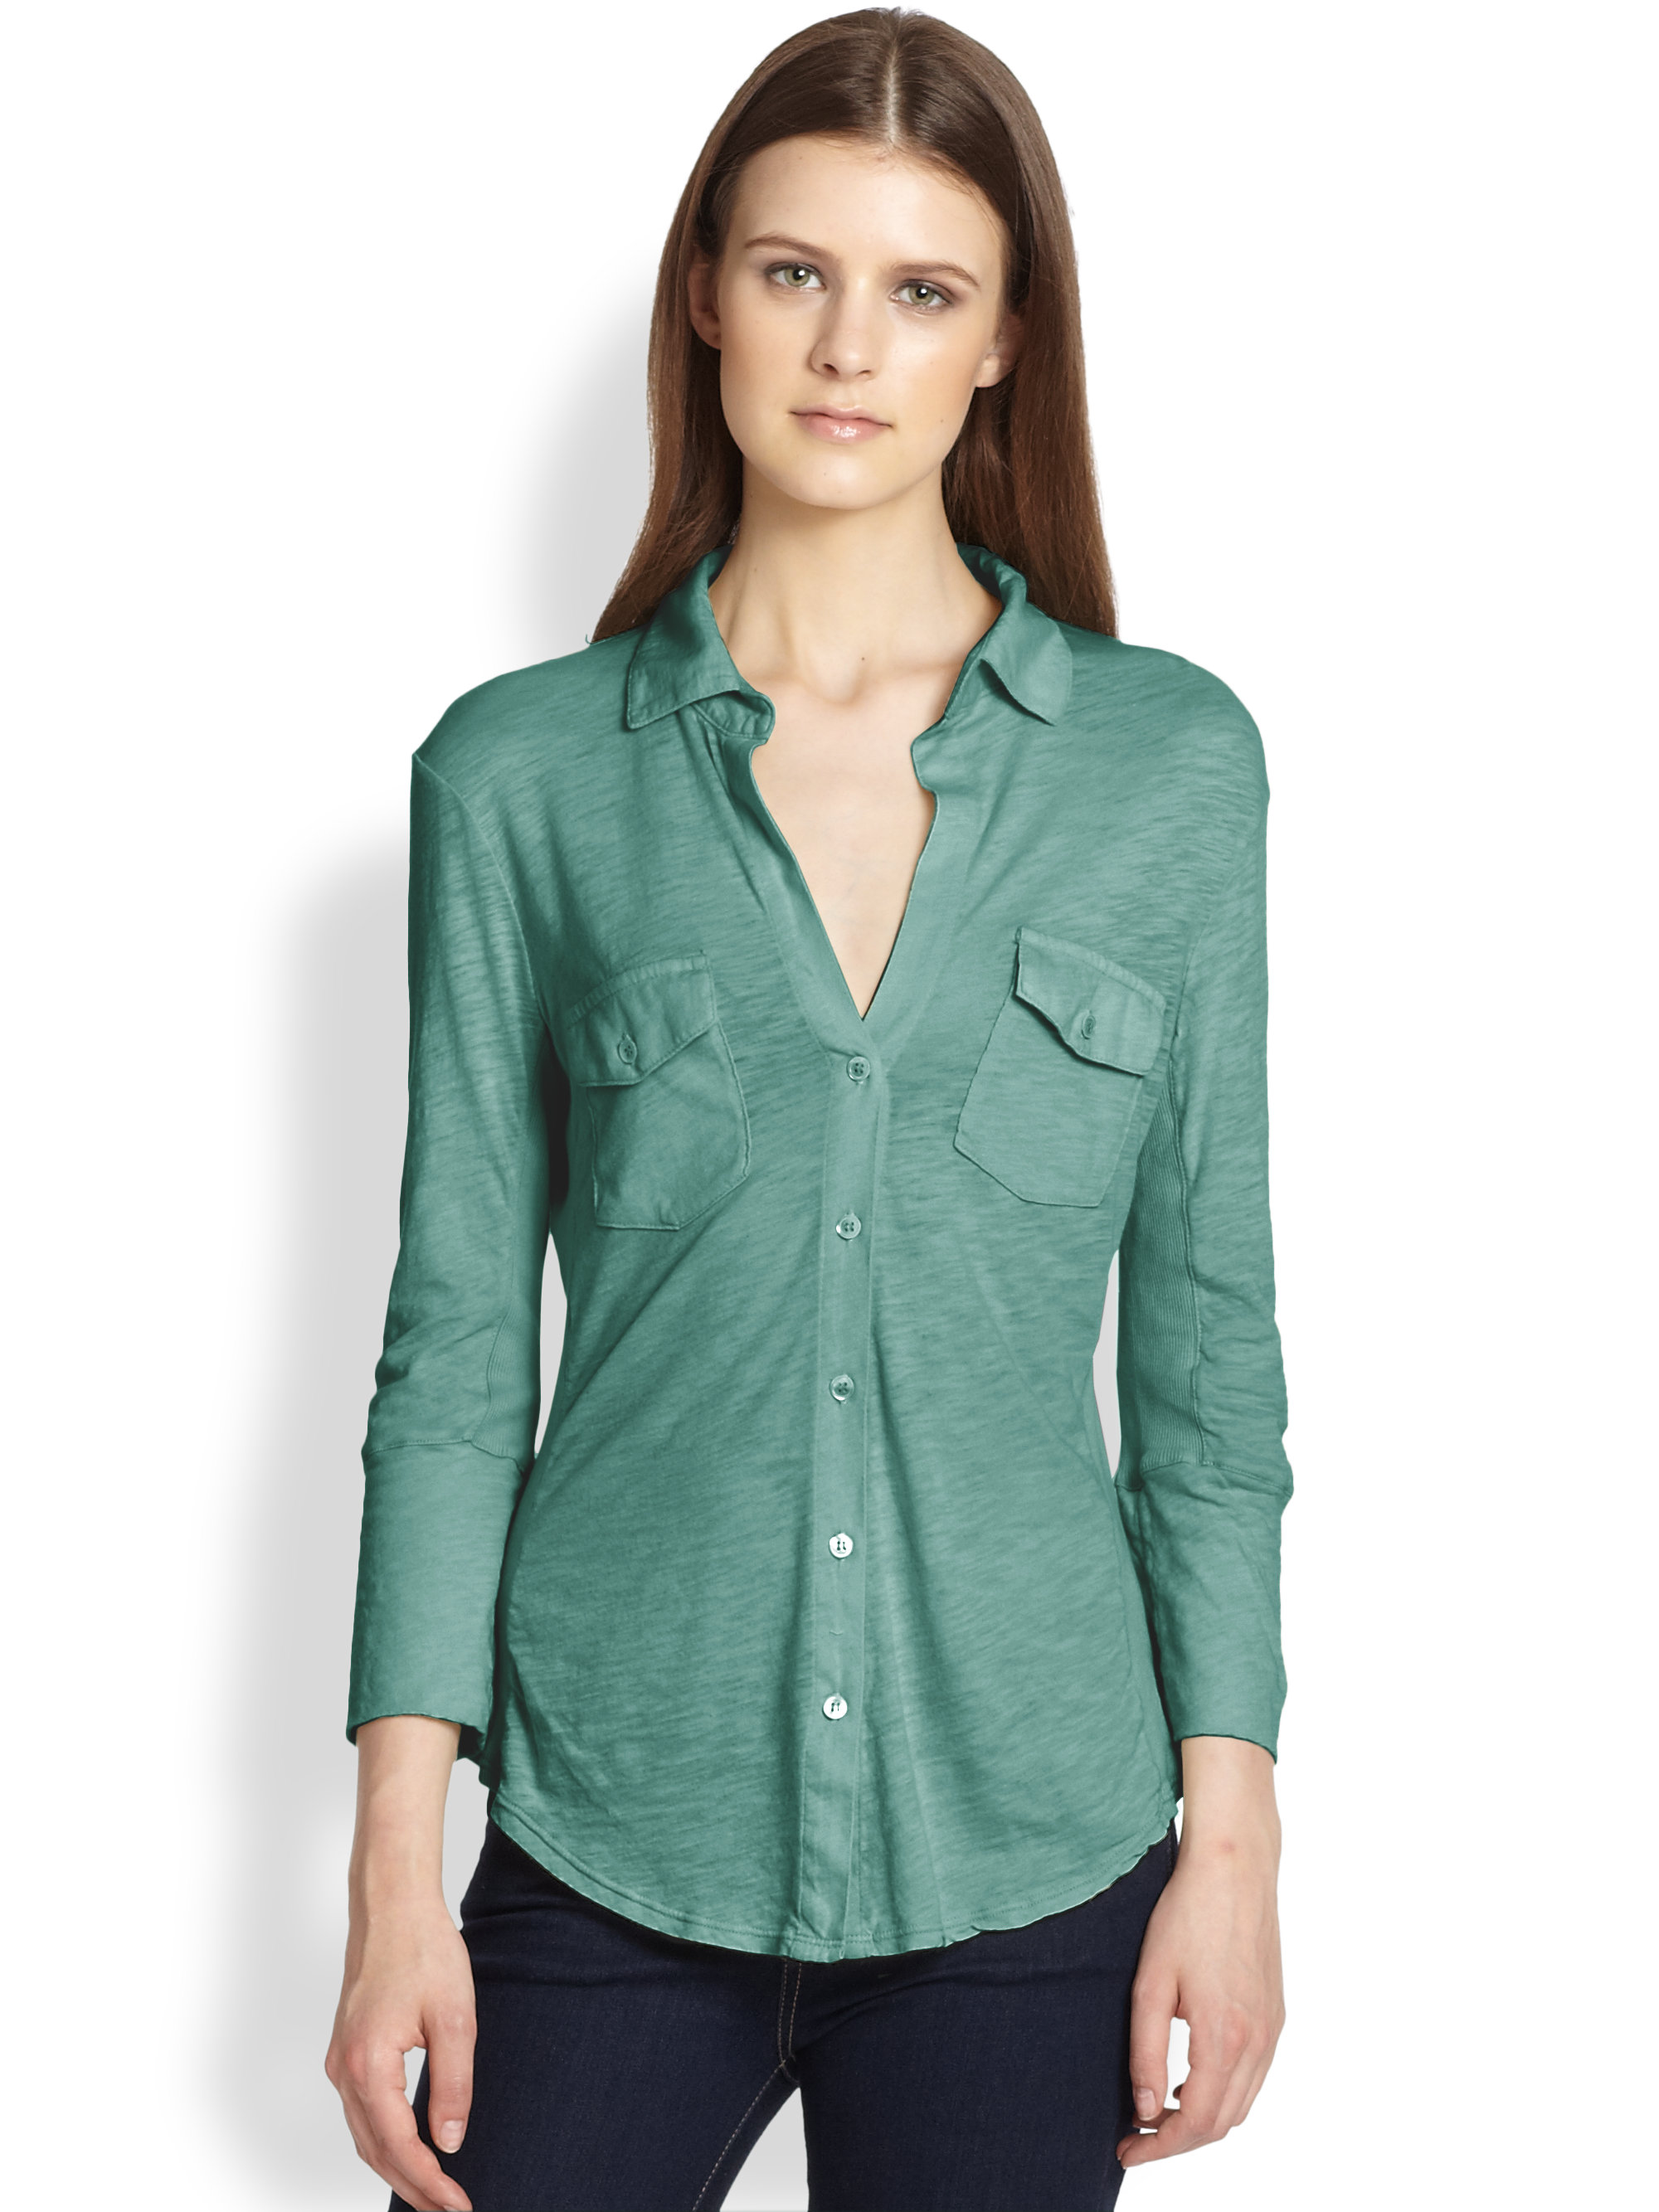 8212aeb23d6 James Perse Slub Cotton Jersey Button-front Shirt in Green - Lyst